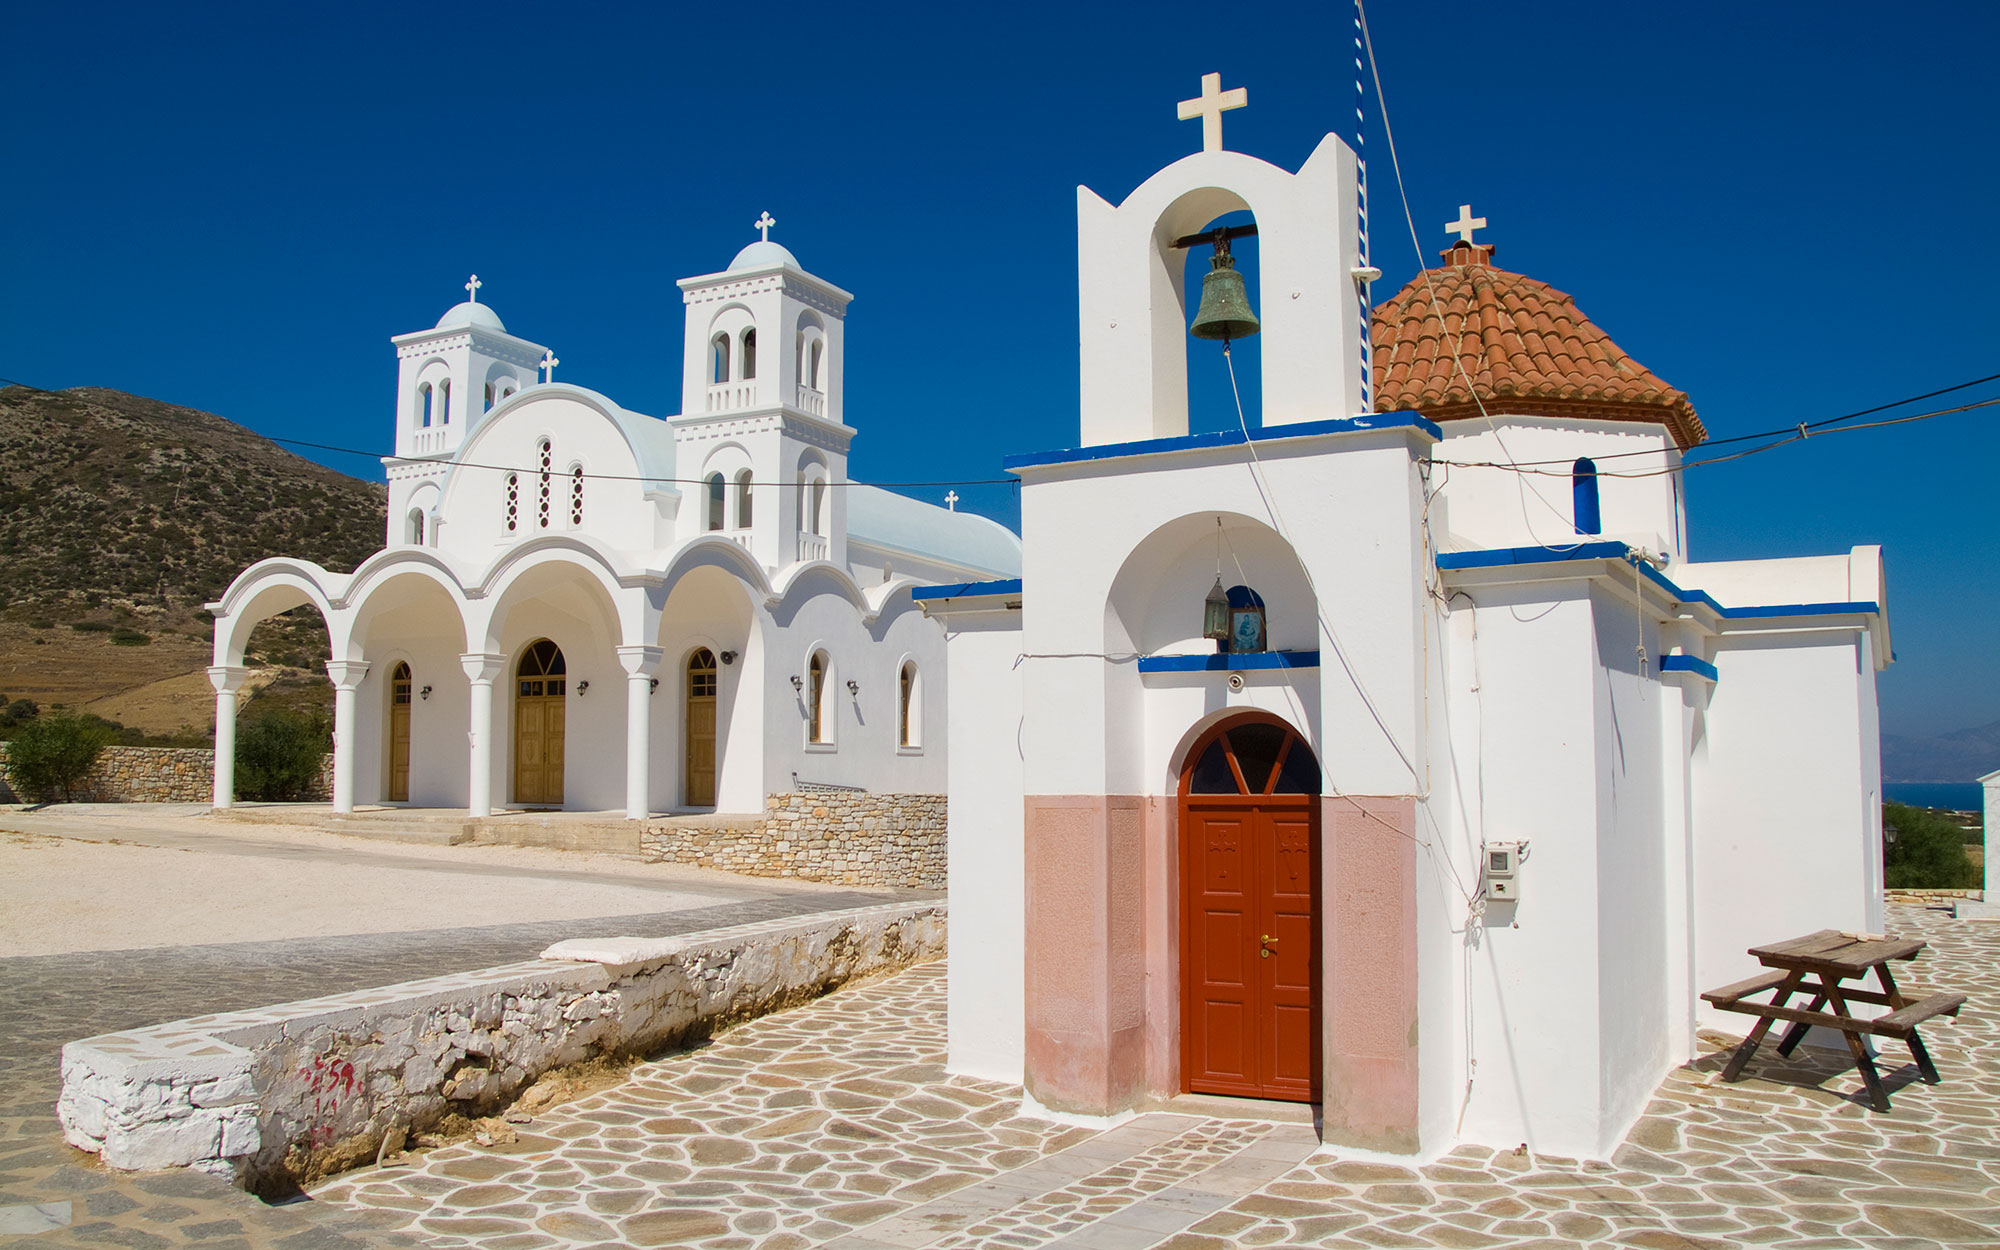 Island Of Paros, Greece, Church In Town Of Dryos